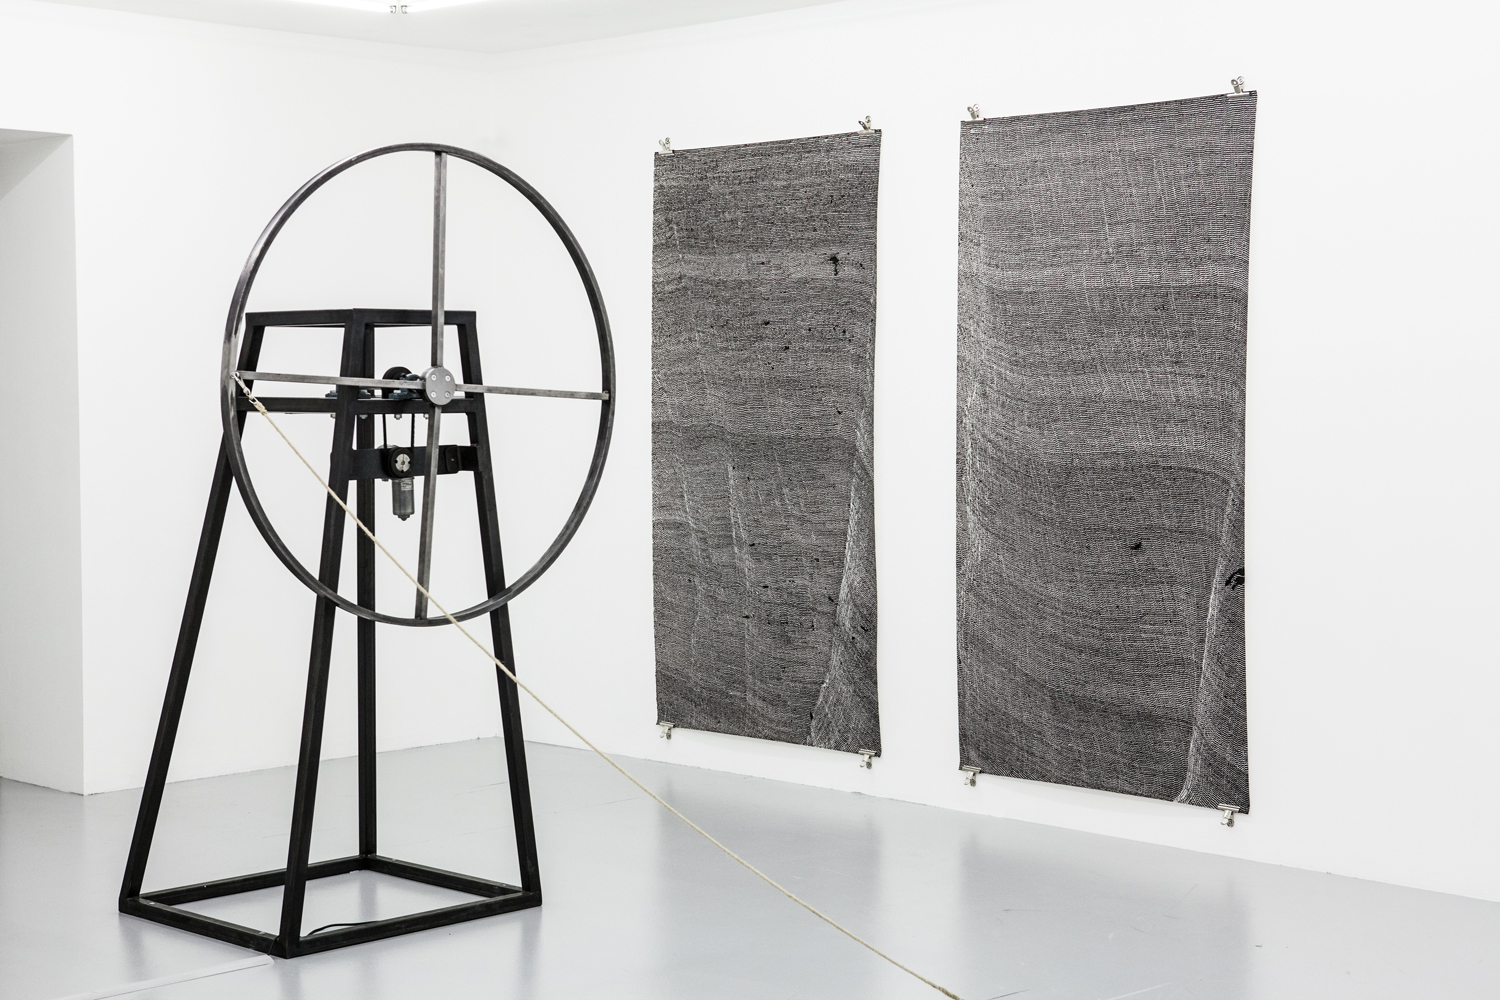 Linda Matalon, Untitled, 2013, wax, graphite on paper / Amalia Pica, Playing solo and indoors (mechanical jump rope), 2013, steel, motor, rope / Signal to Noise, Installation shot, Gallery Niklas Belenius, Stockholm